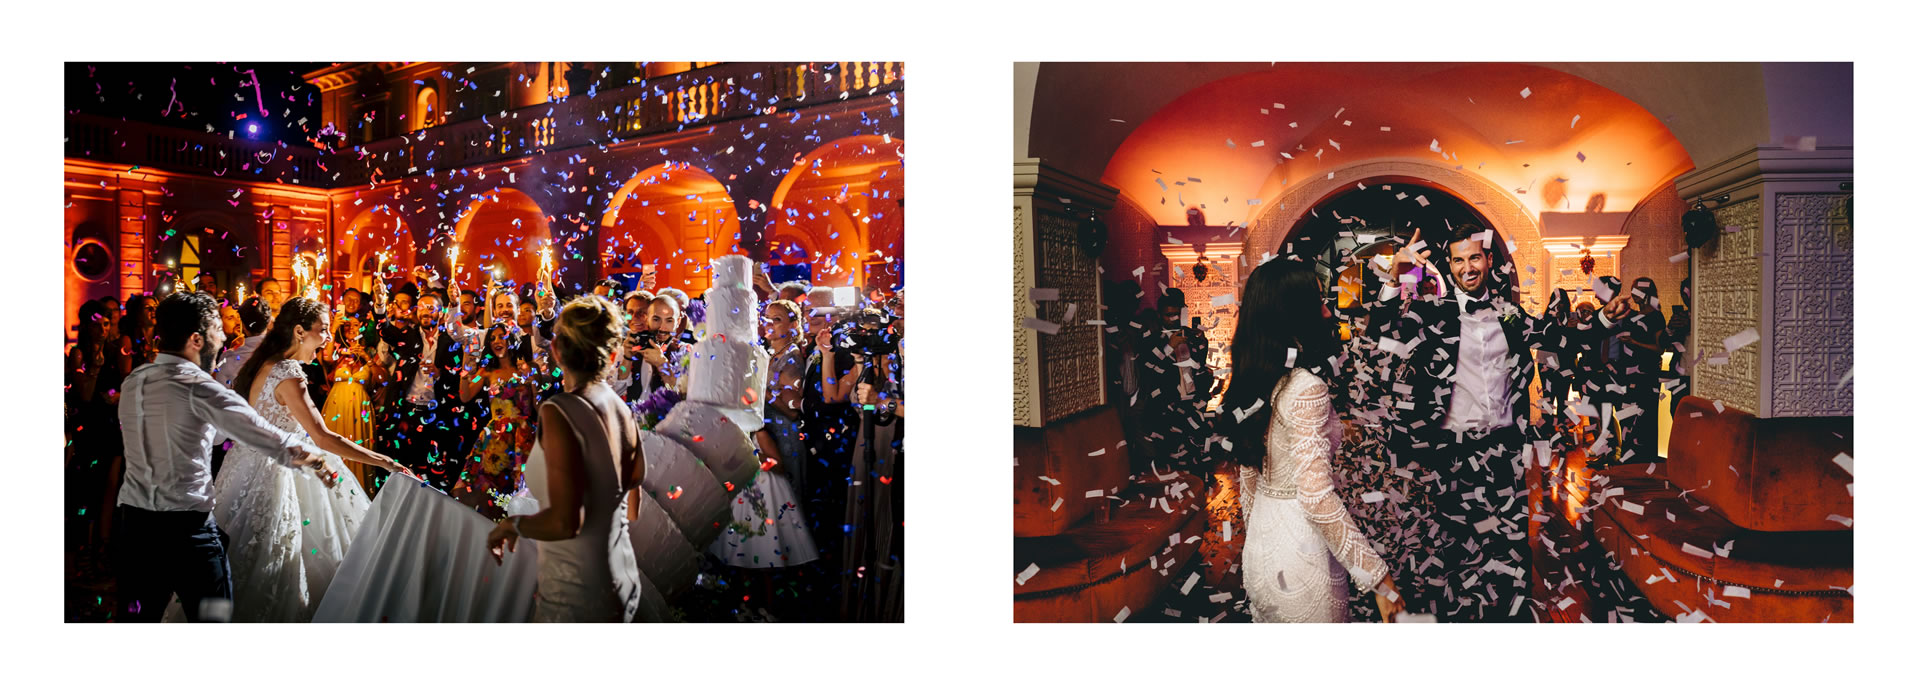 - 49 :: BEST OF 2018 WEDDING: A COLLECTION TO TELL ONE YEAR STORY :: Luxury wedding photography - 48 ::  - 49